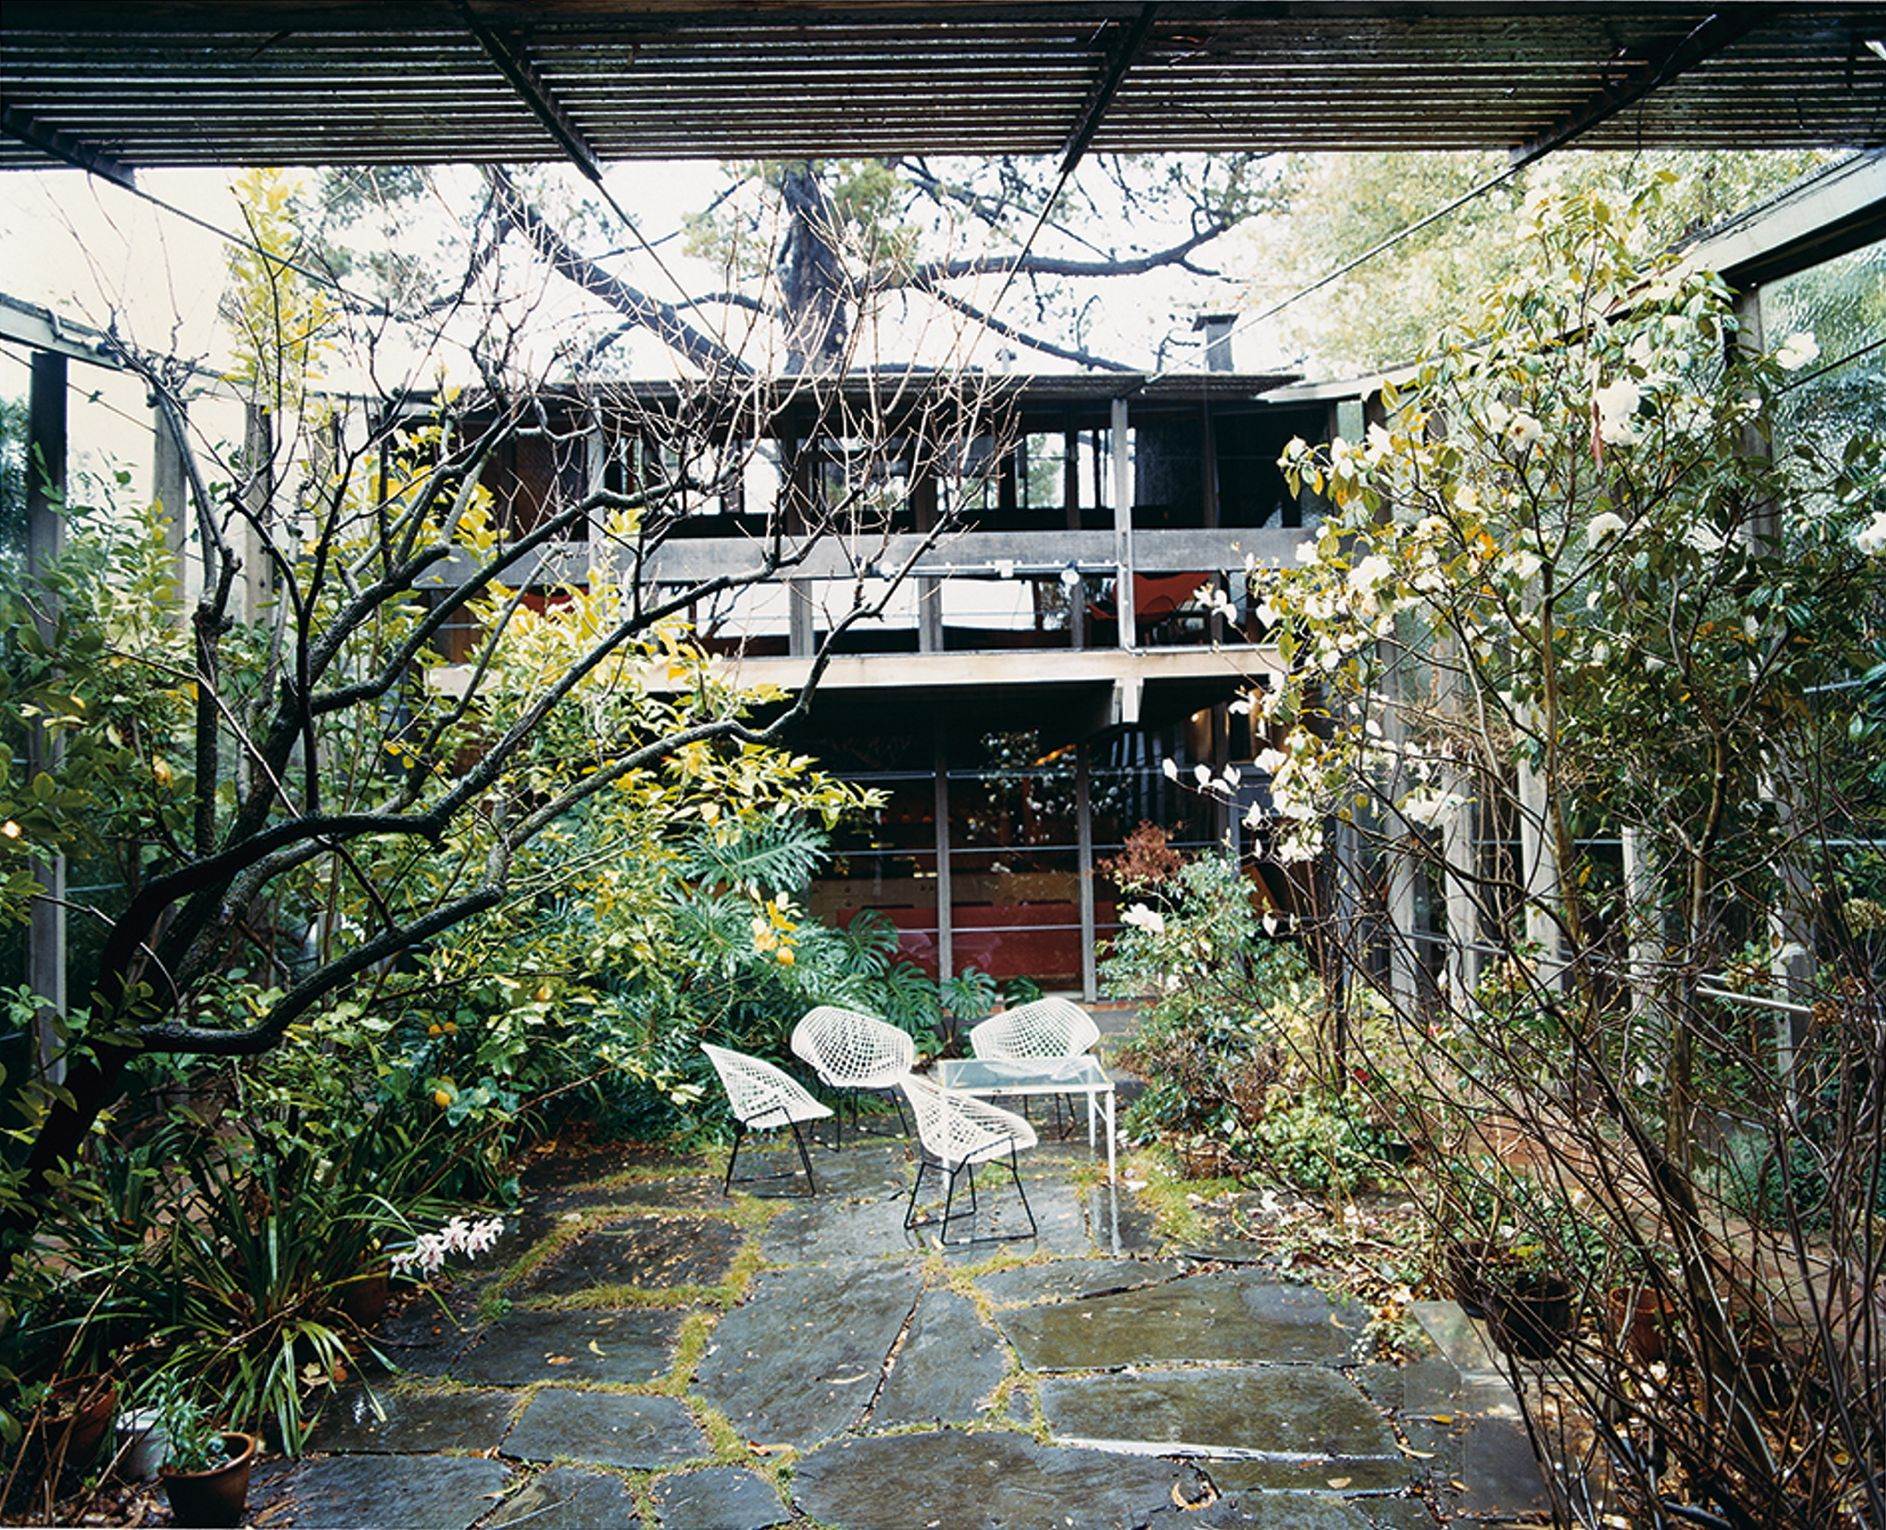 This is a colour photograph of a courtyard with large stone paving, a white metal table and chair setting, and surrounded by flowering shrubs and trees